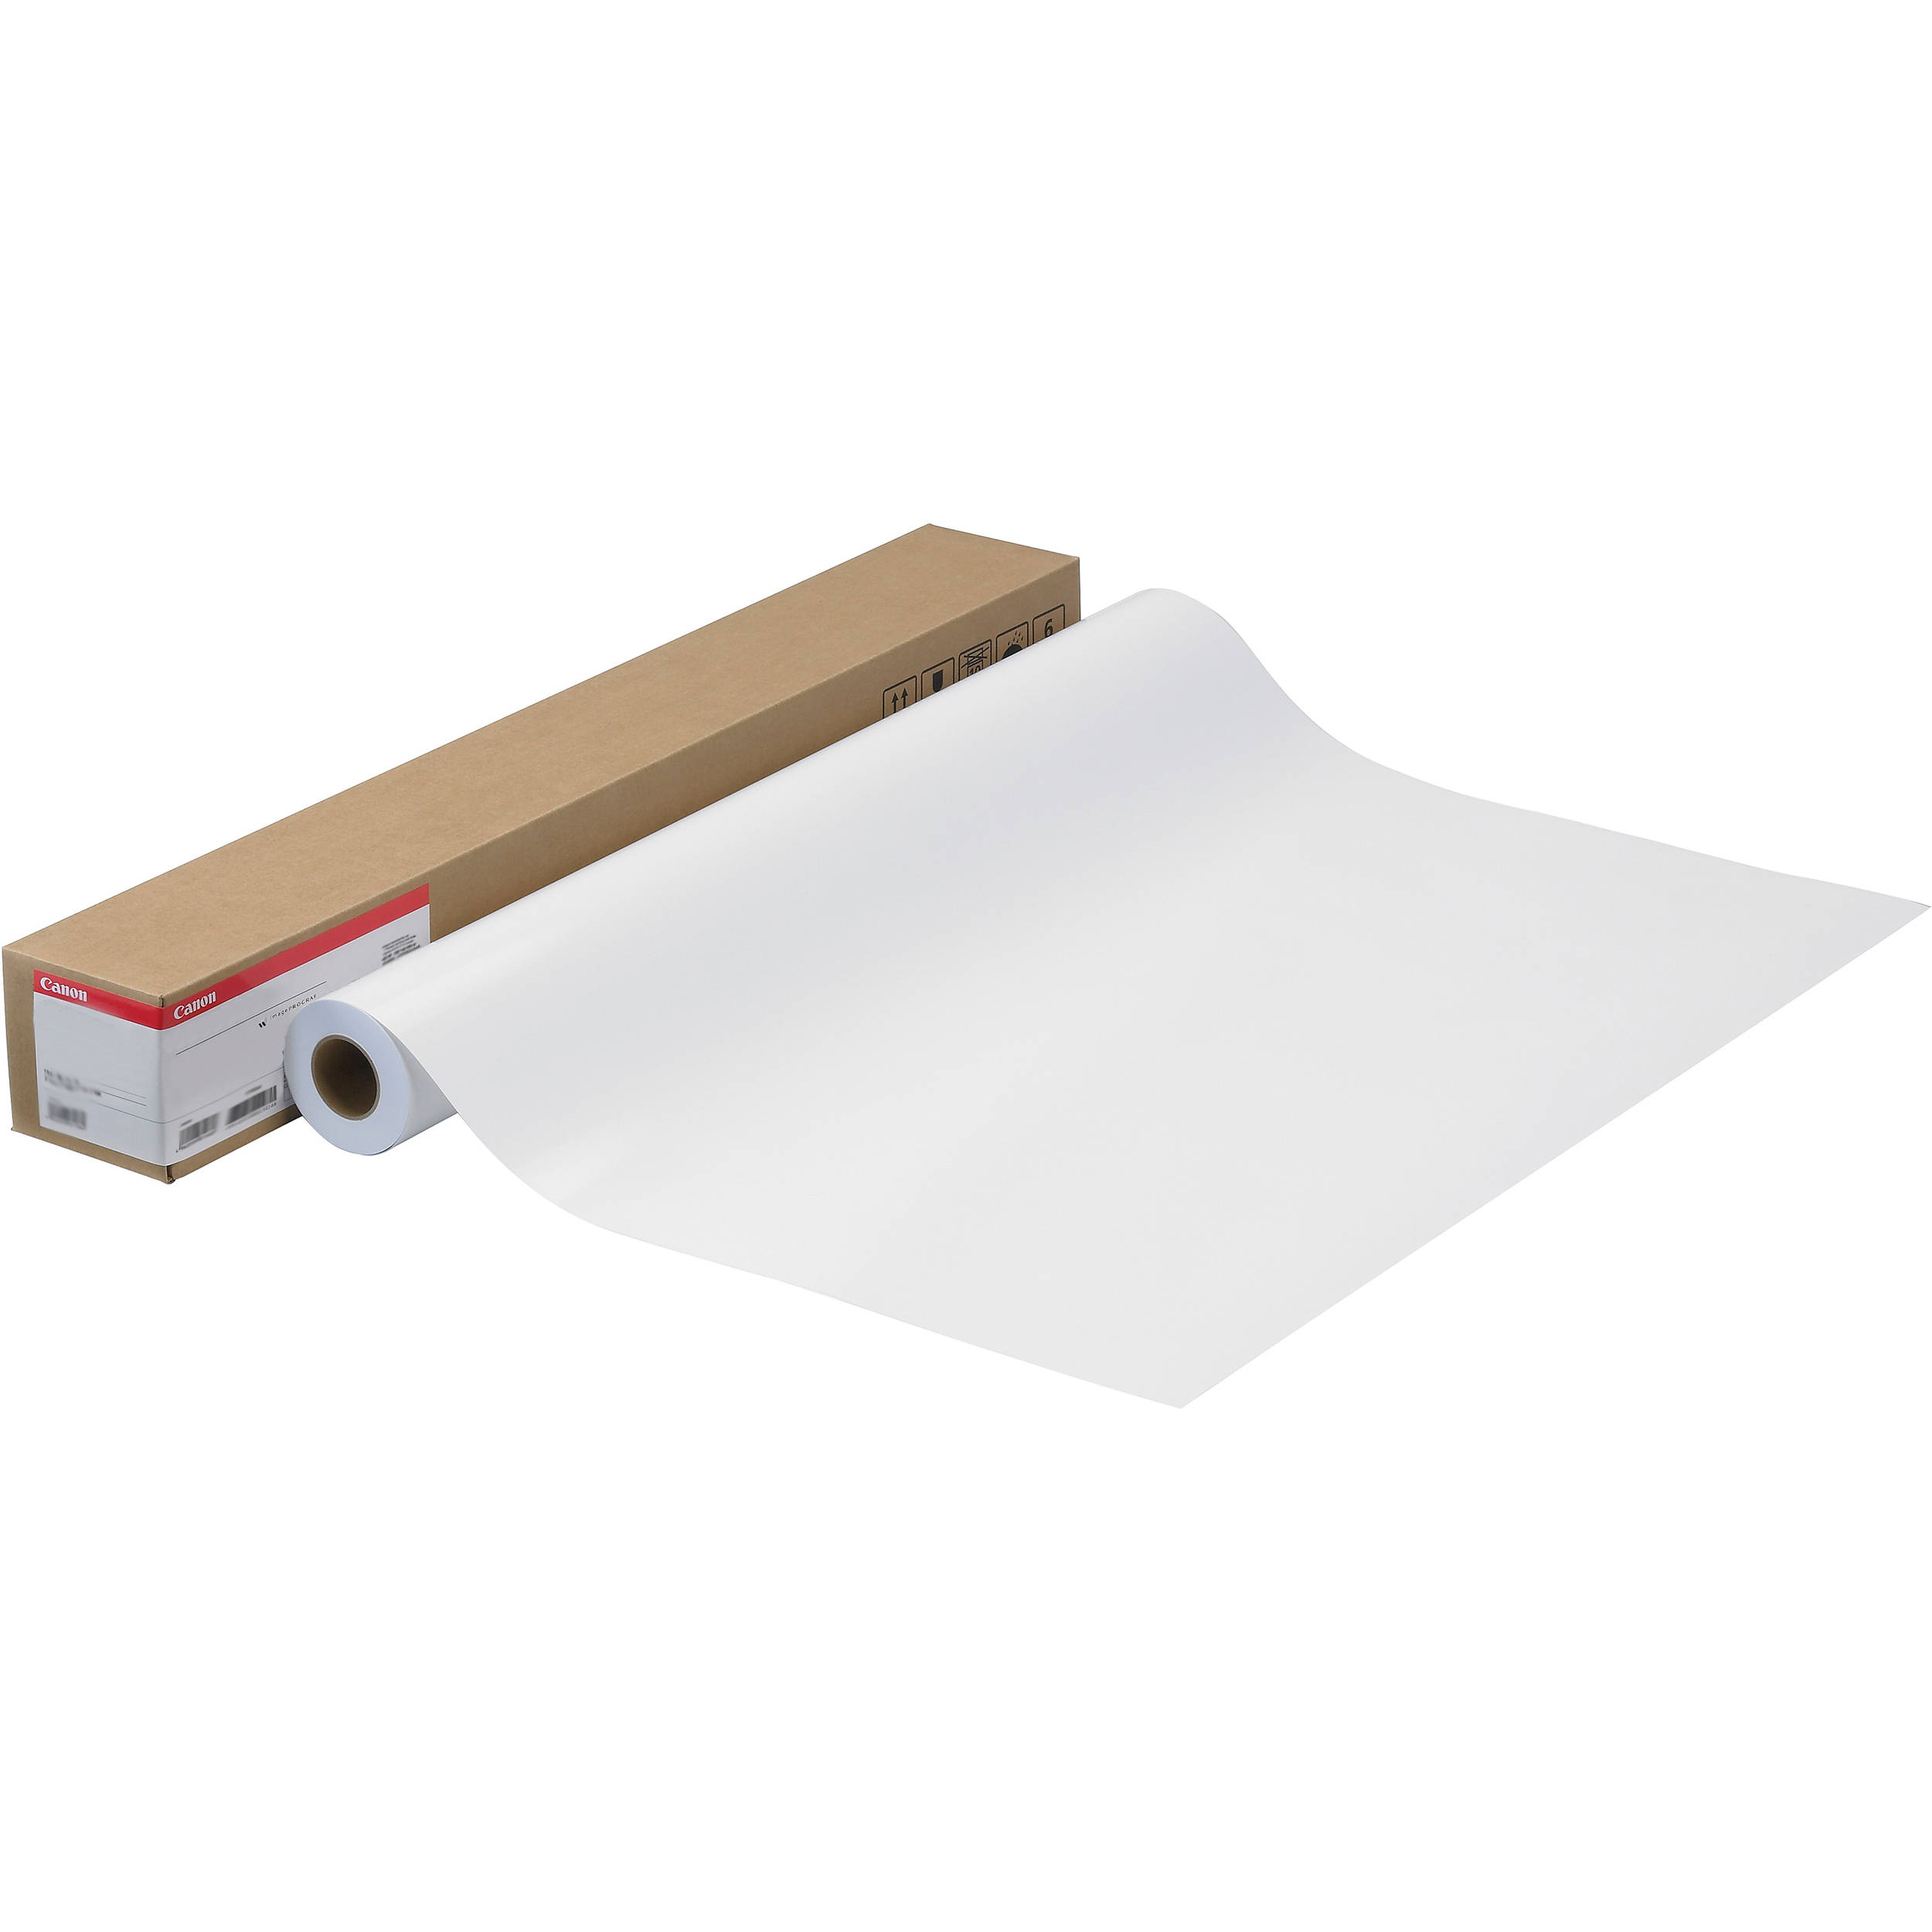 how to show zooming in on paper